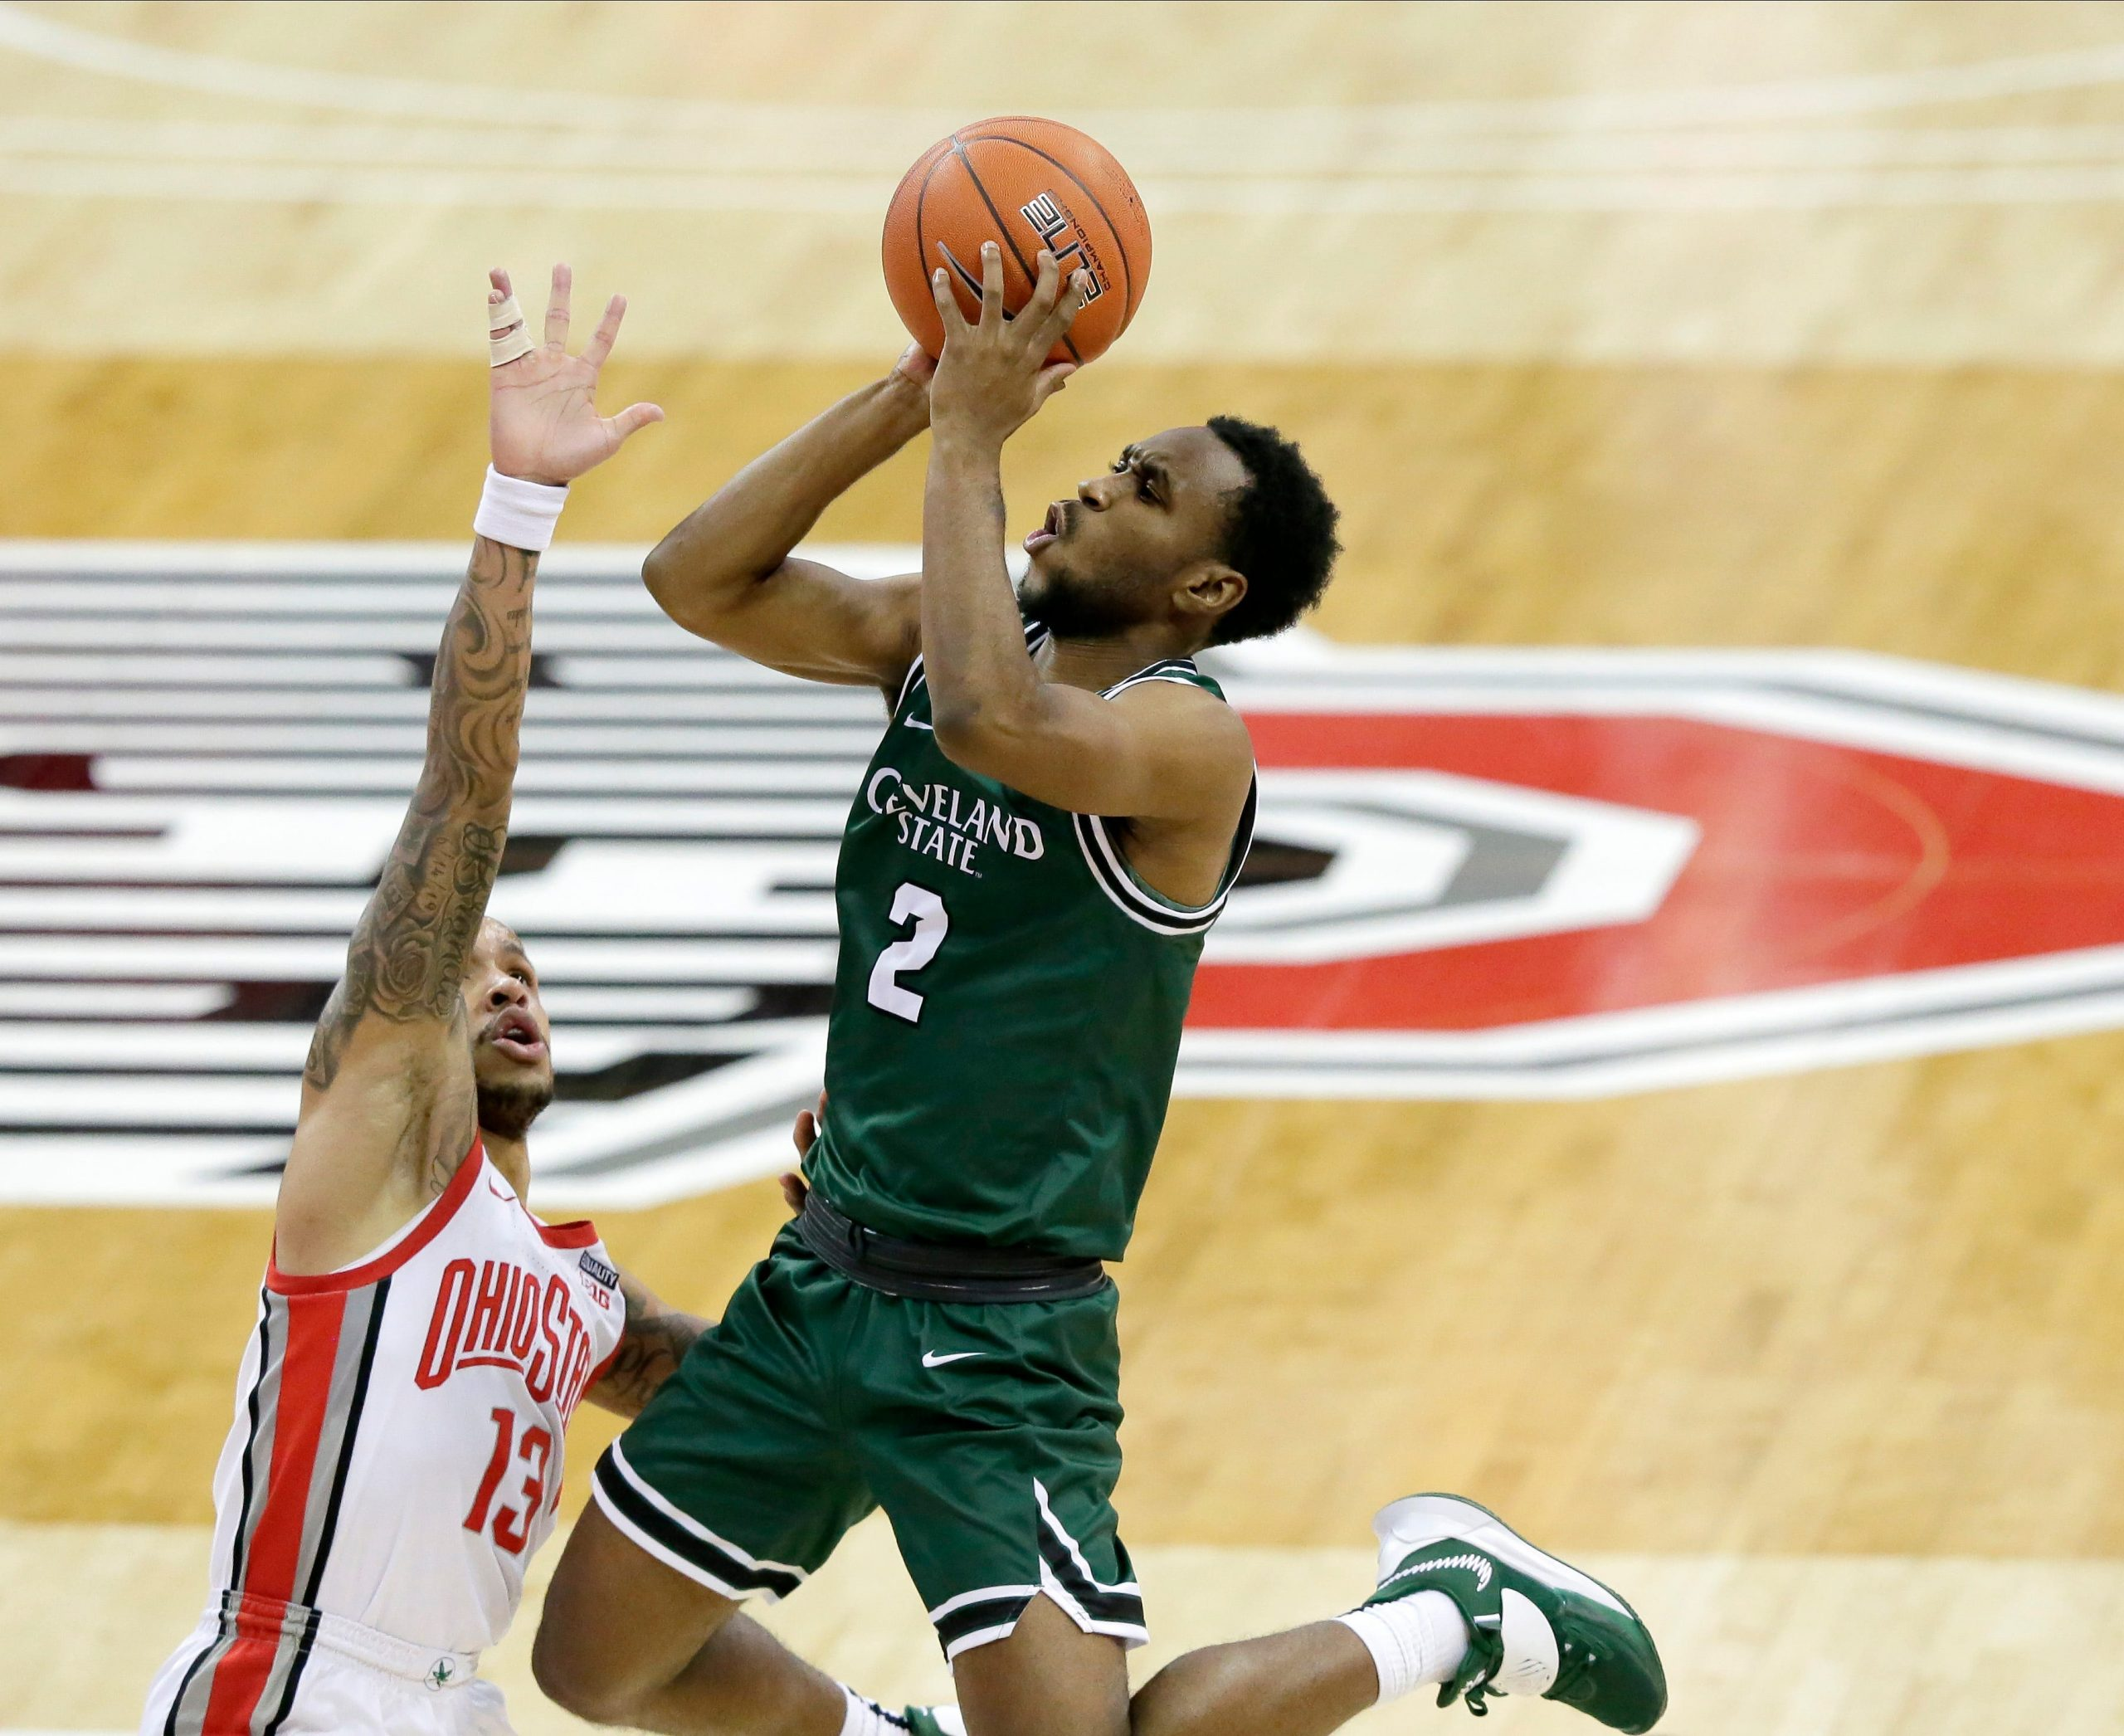 John Fanta: Cleveland State Is Going To Need A Lot Of Defense To Move Past The First Round Of The Ncaa Tournament photo